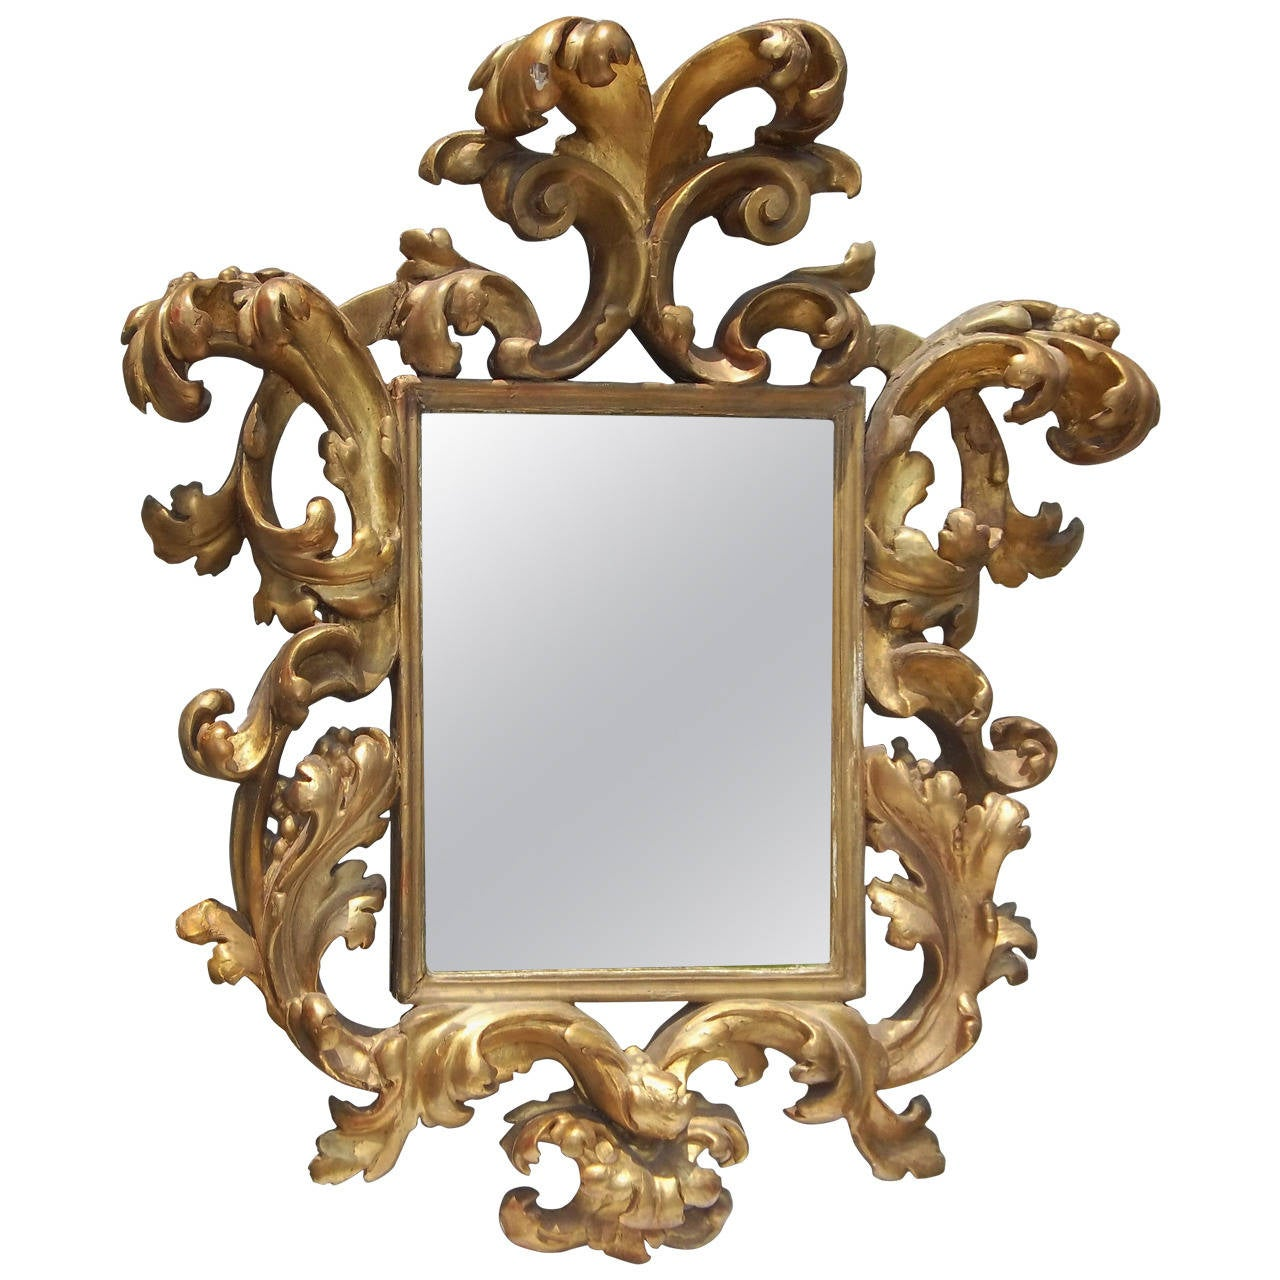 Carved giltwood italian baroque or rococo style mirror for for Baroque mirror